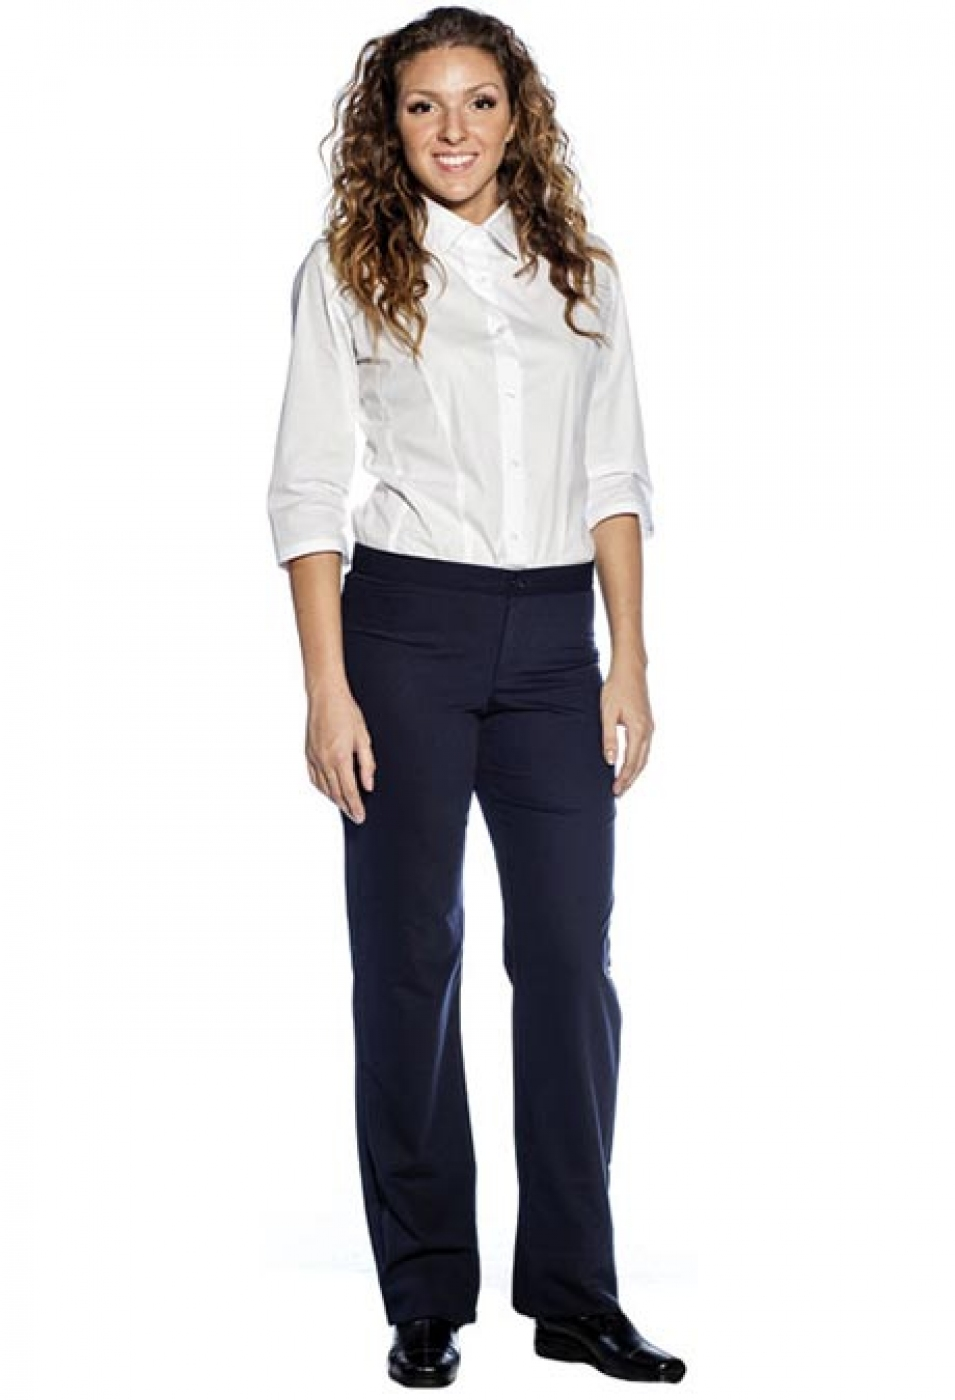 Pantalon ospatar clasic, model dama